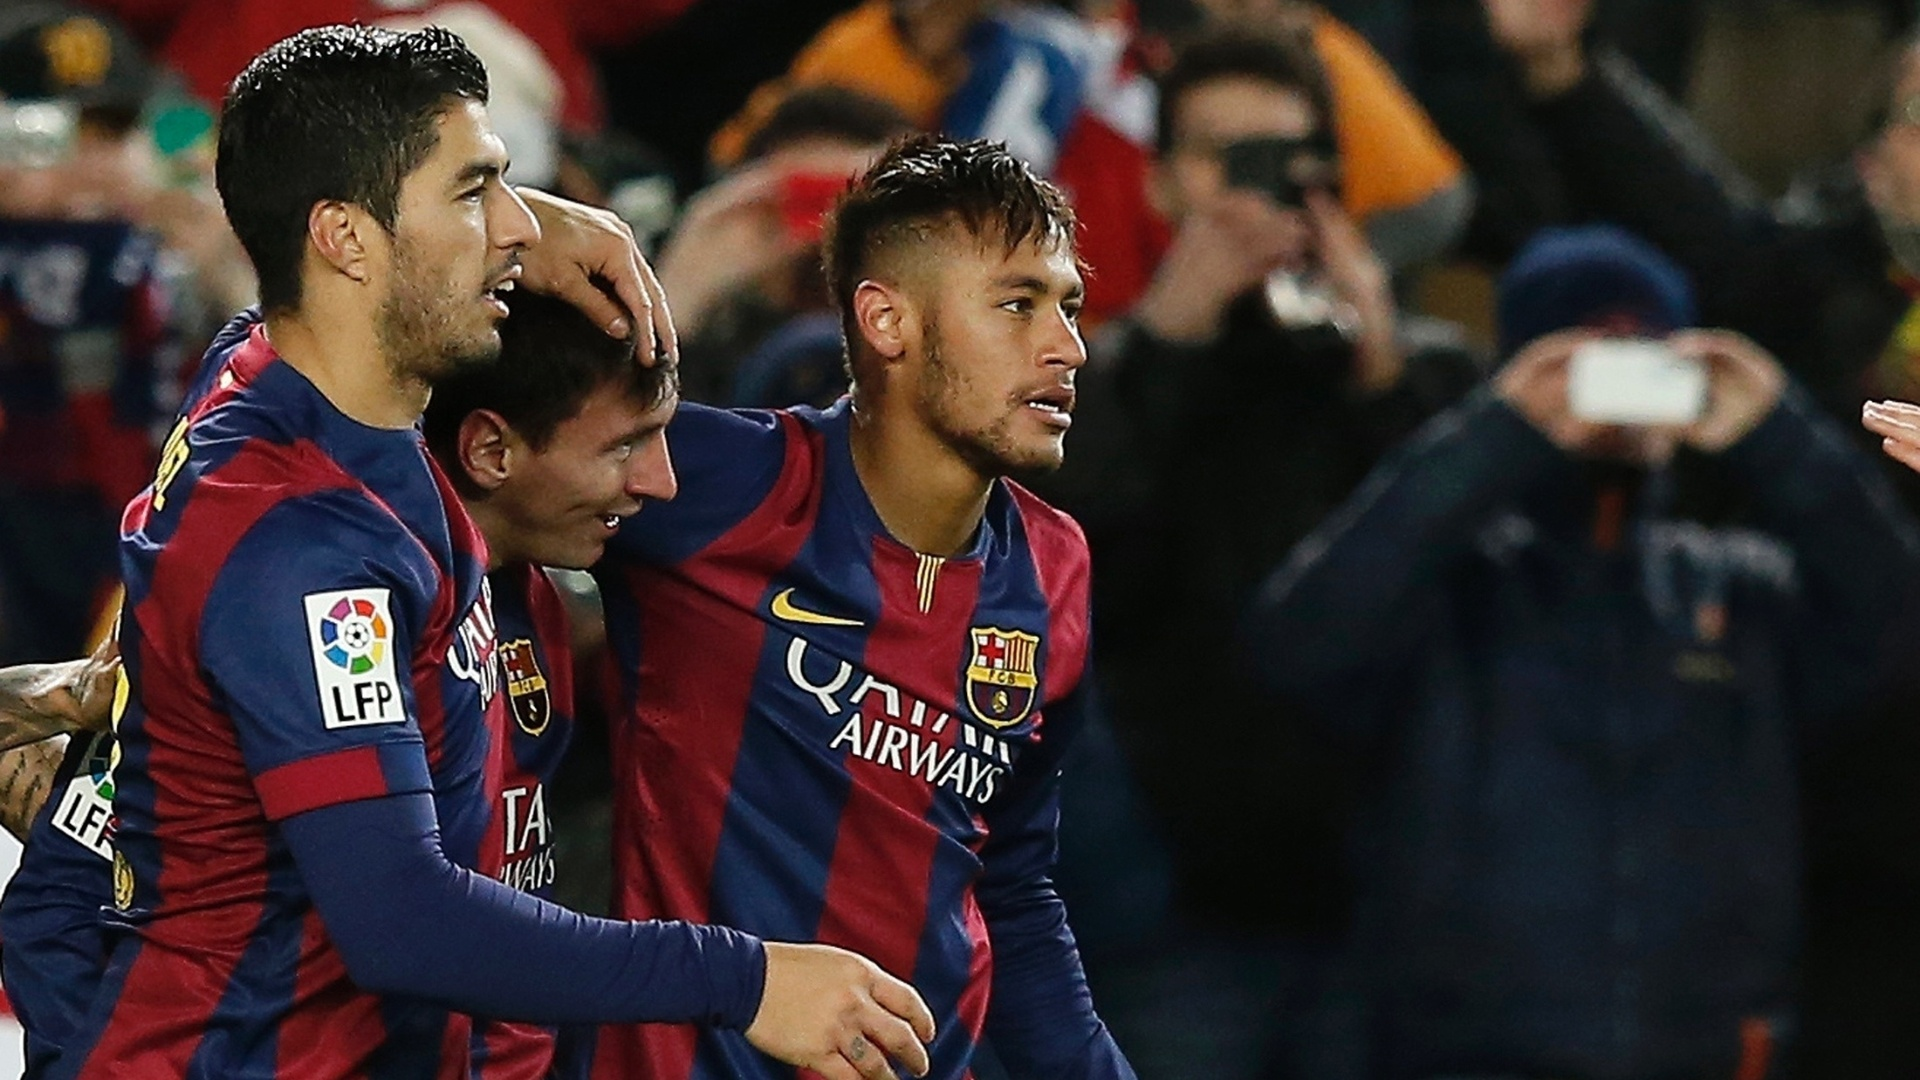 Cinco vitórias do Barcelona tiveram a marca conjunta do trio Messi, Neymar e Suárez